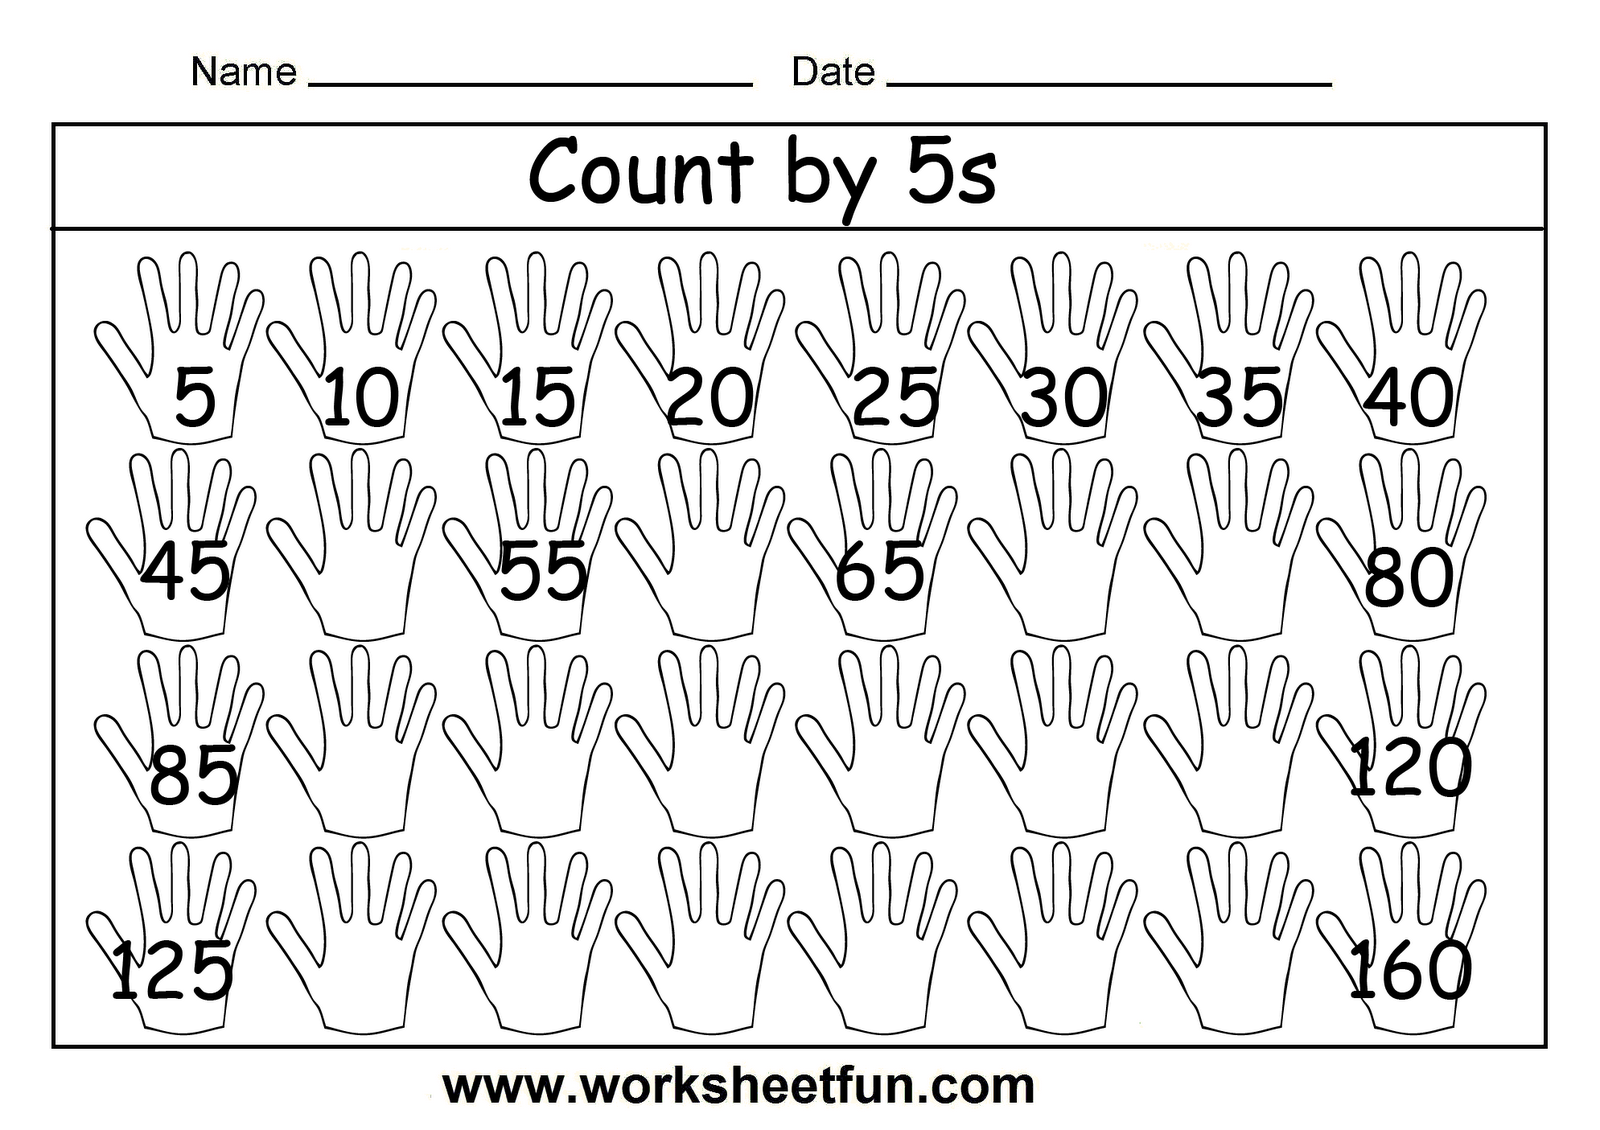 Free Printable Math Worksheets | Mathematik | Pinterest | Mathe ...